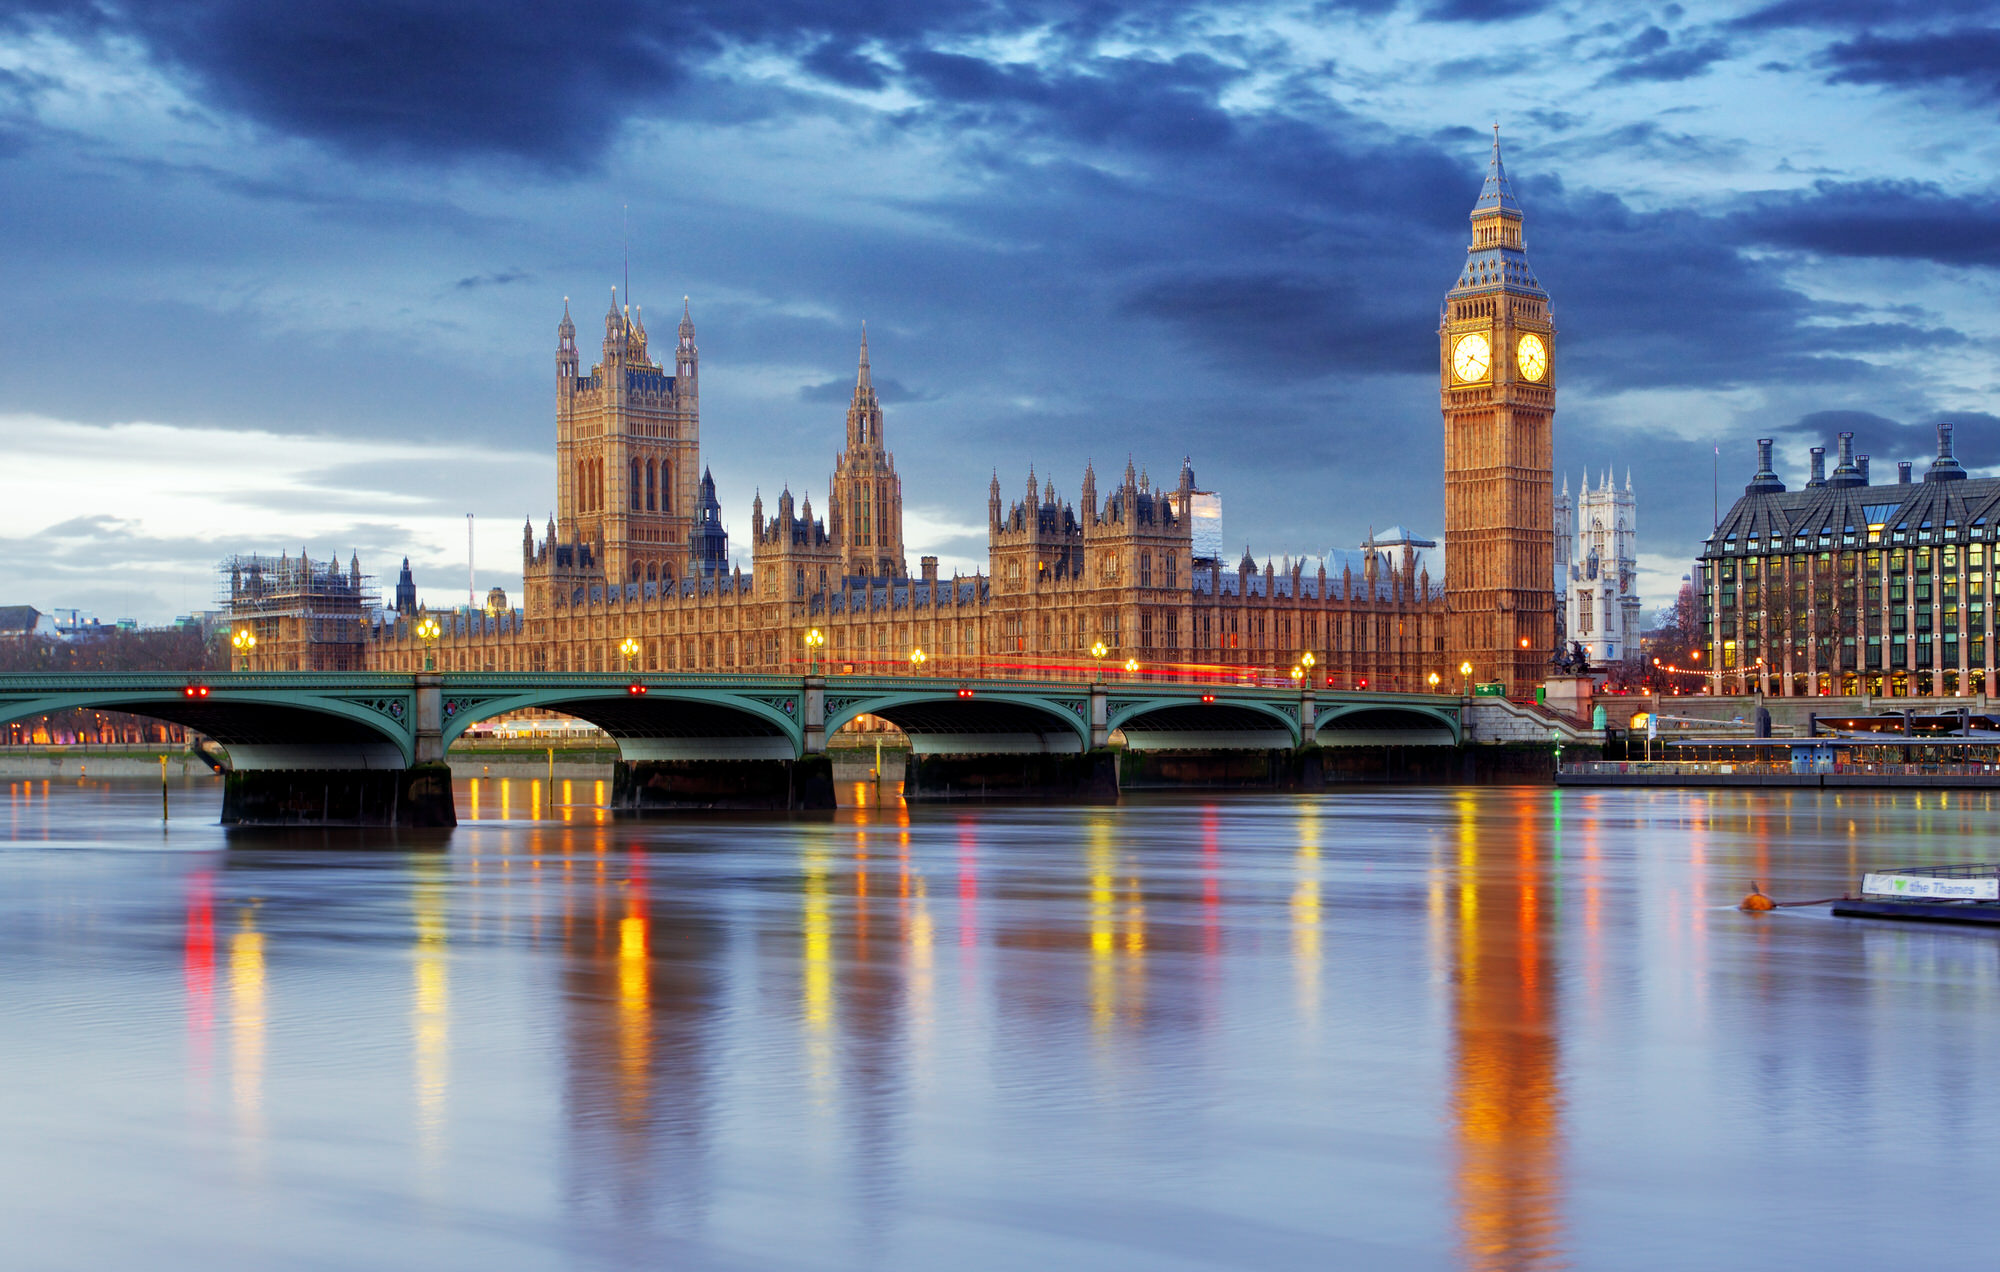 London – Big ben and houses of parliament, UK